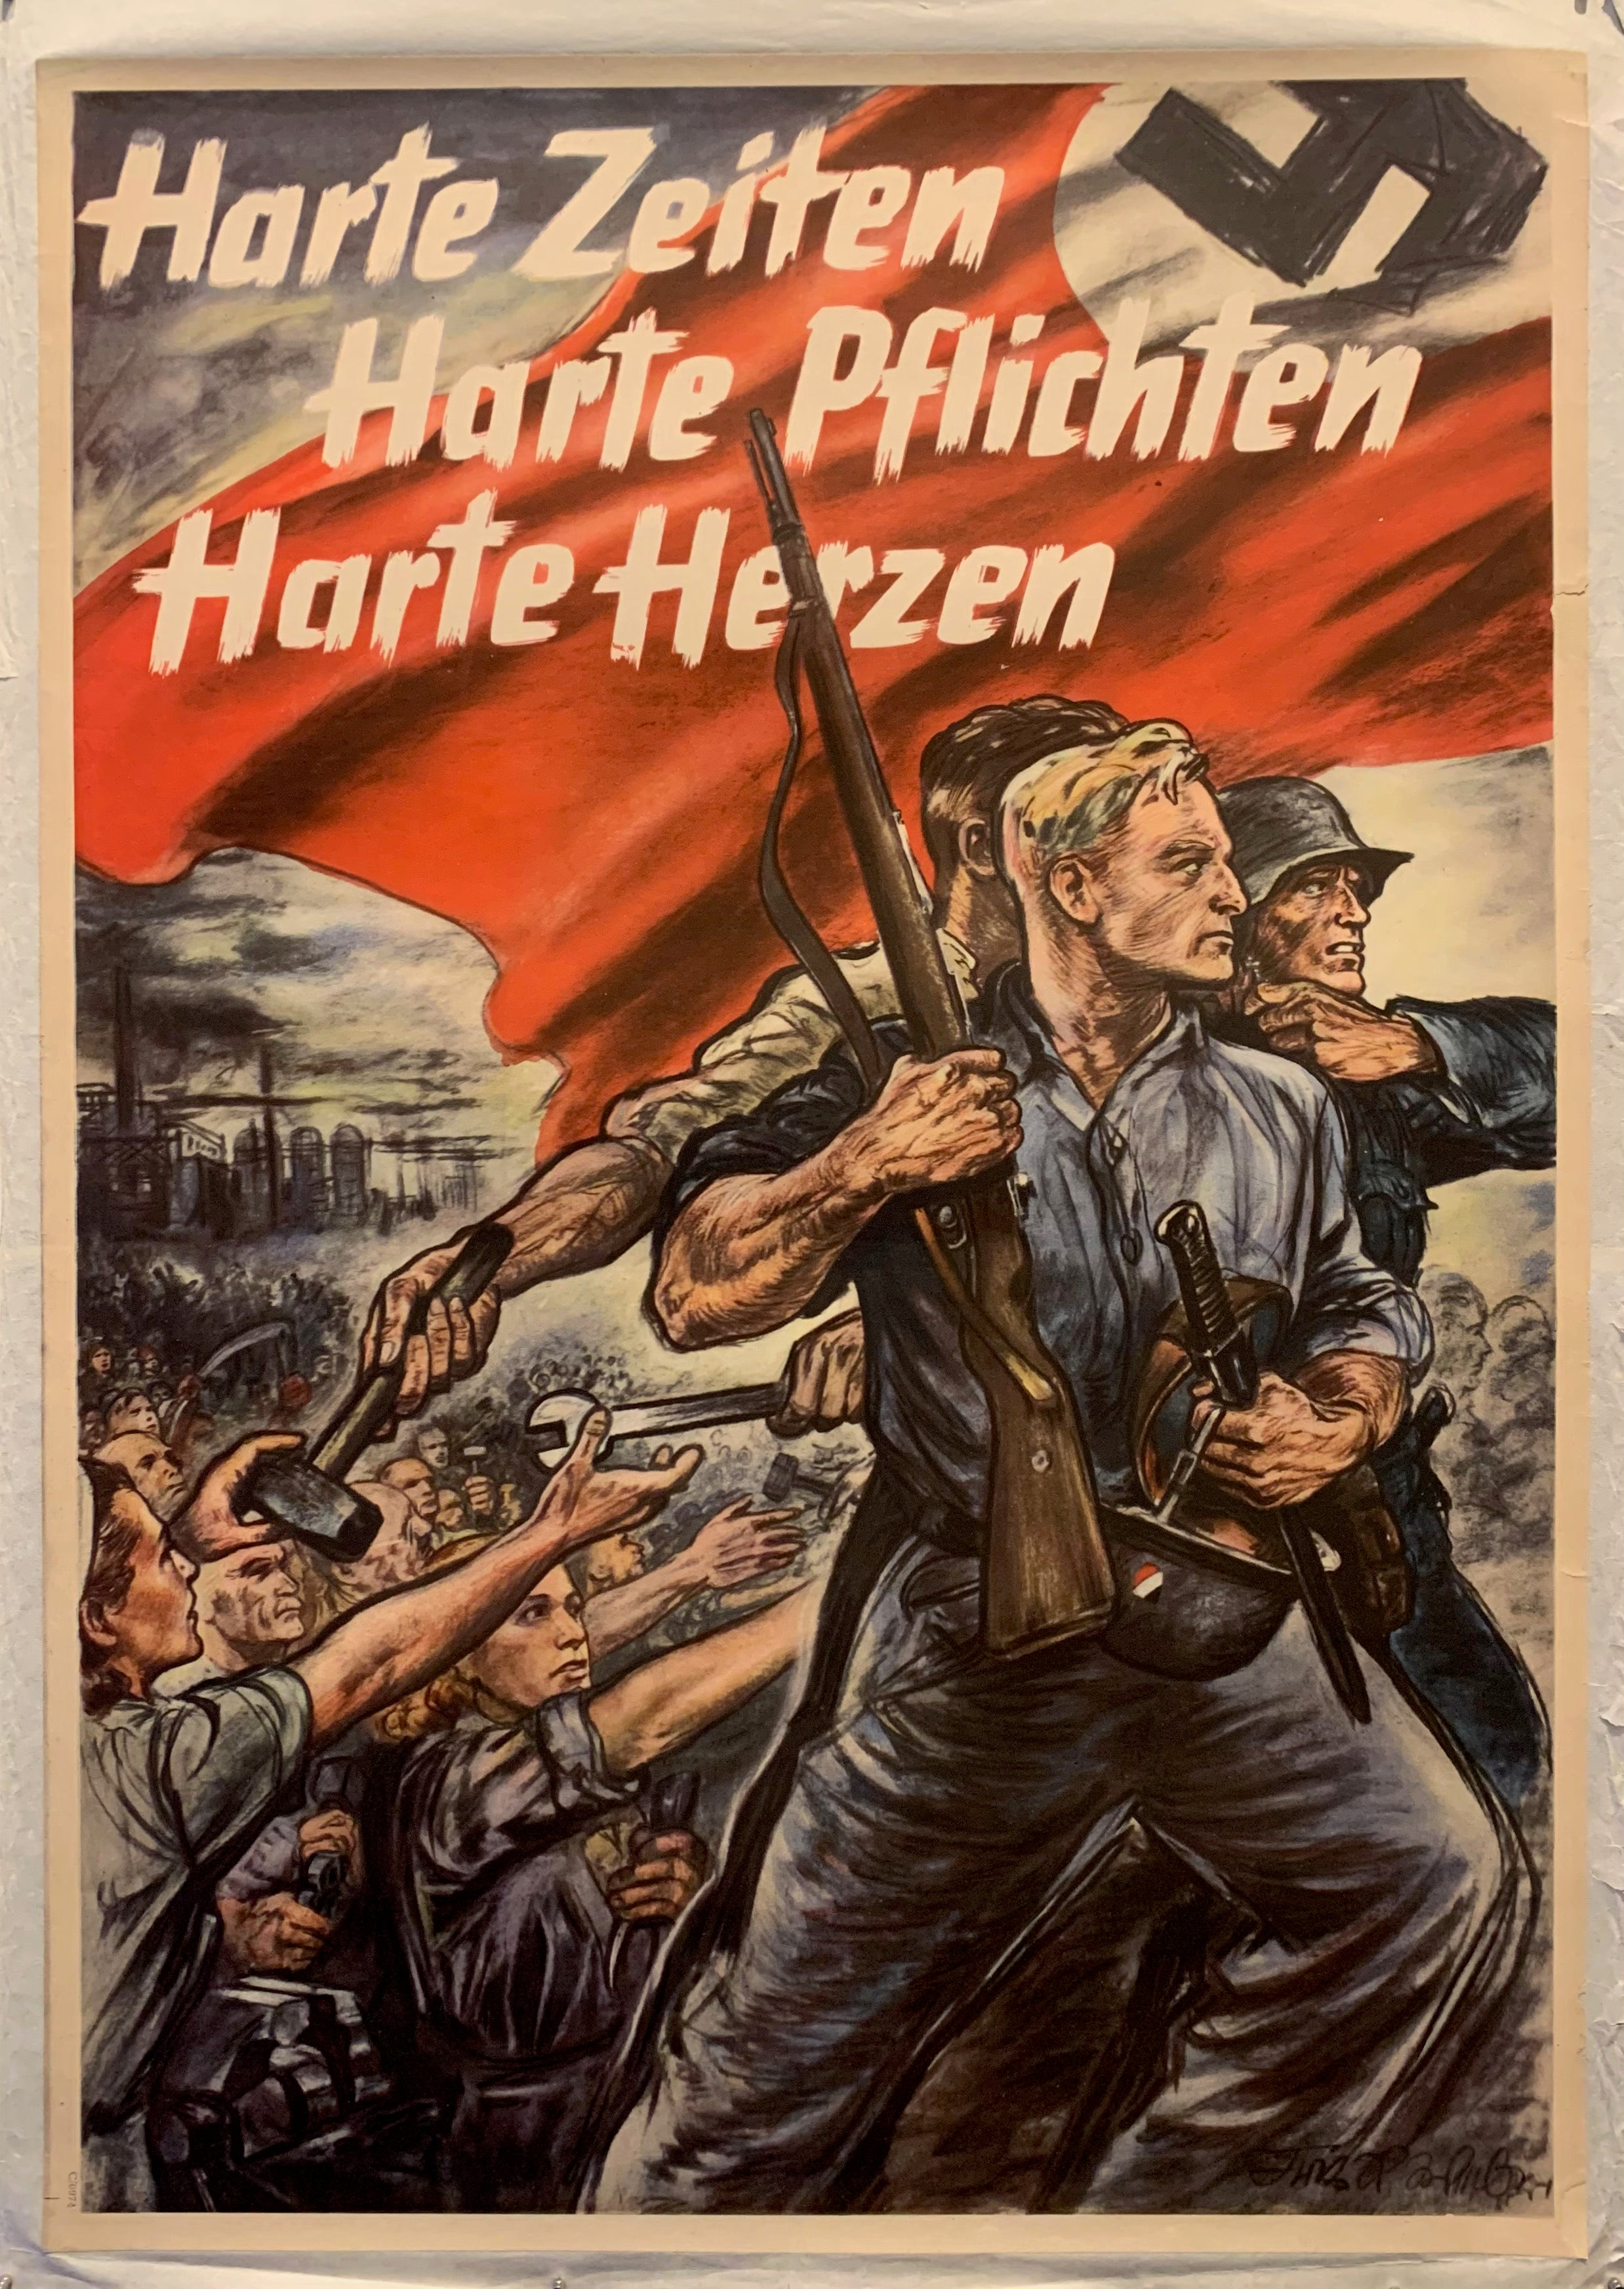 Pro-Nazi WWll German poster on rice paper showing how all citizens must make hard sacrifices during war time and help the troops. These posters were made to gain more support from the German people for the war. Pictured are men carrying a Nazi banner going off to fight, while others reach for tools; factory in background.